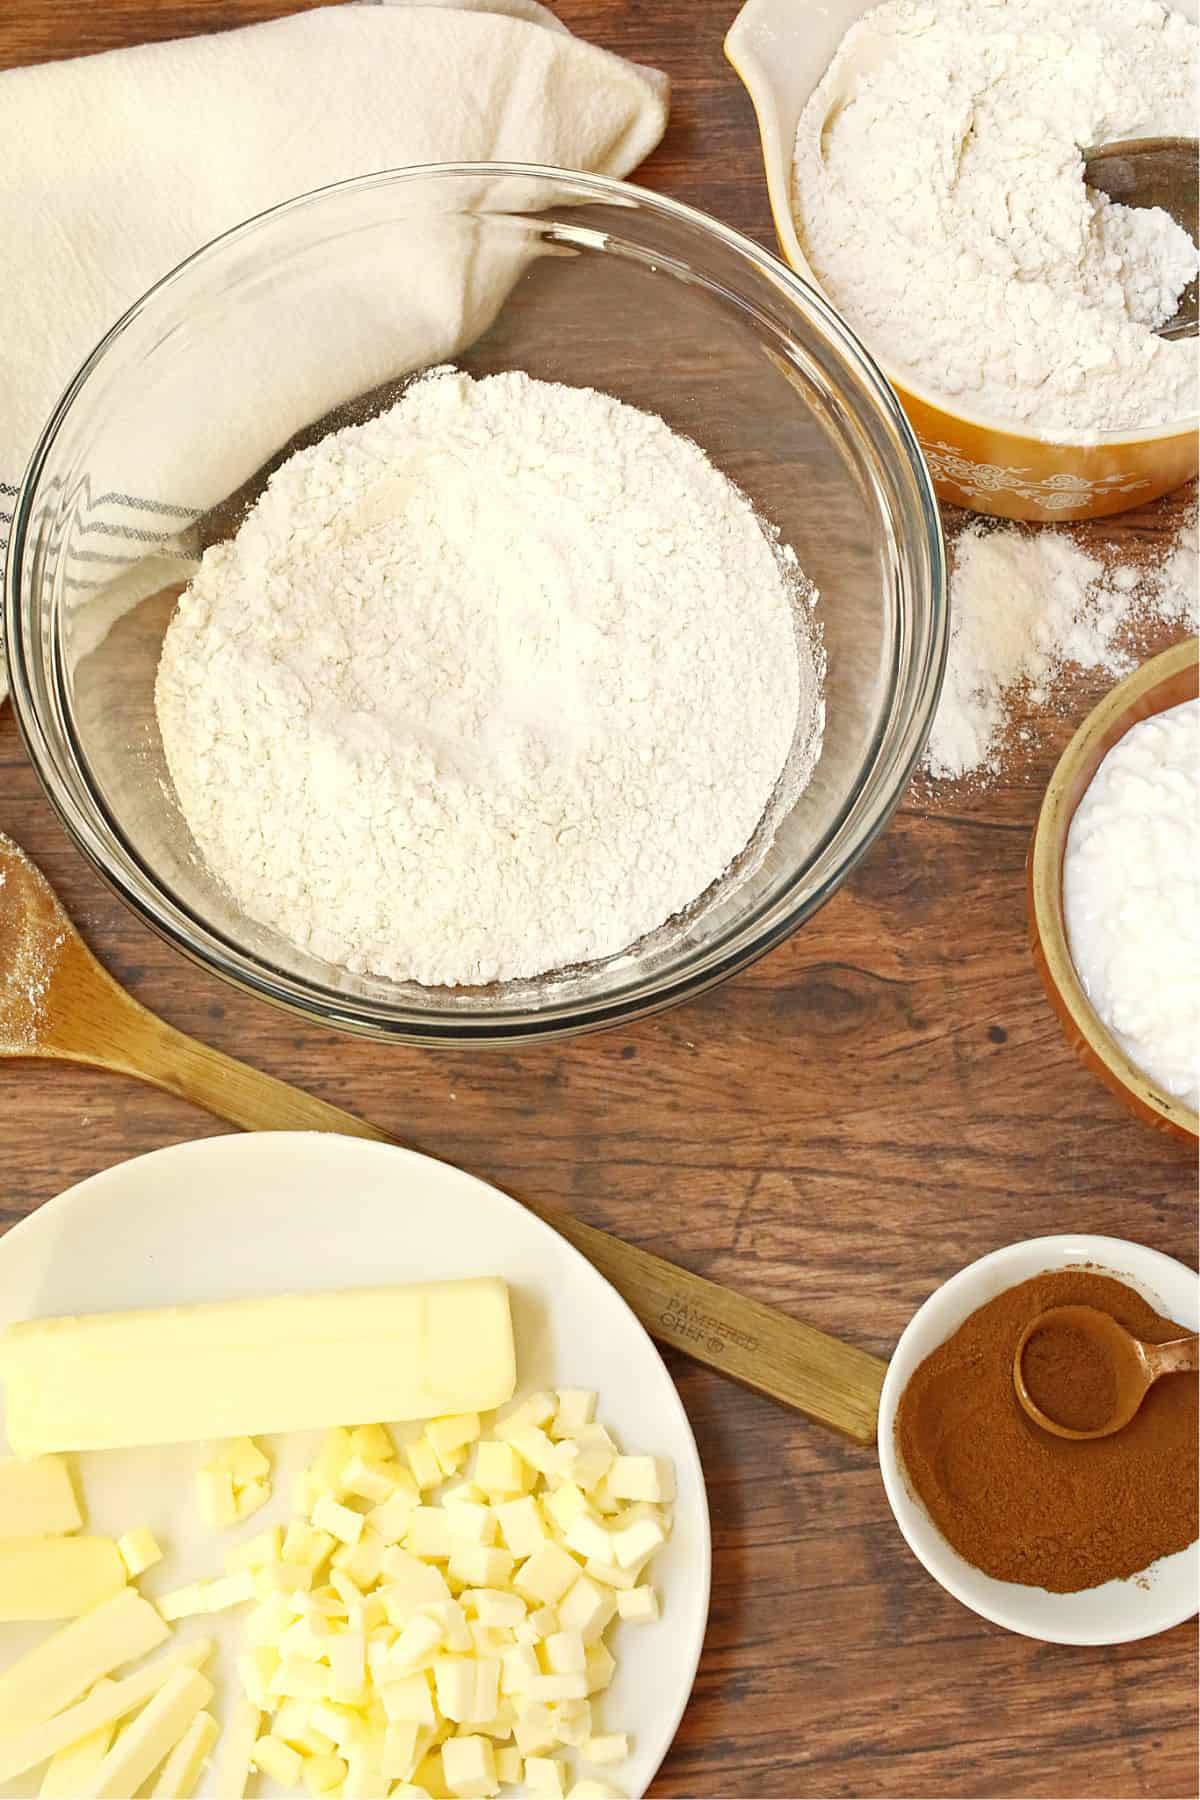 butter, flour, cottage cheese and cinnamon ingredients for rolls